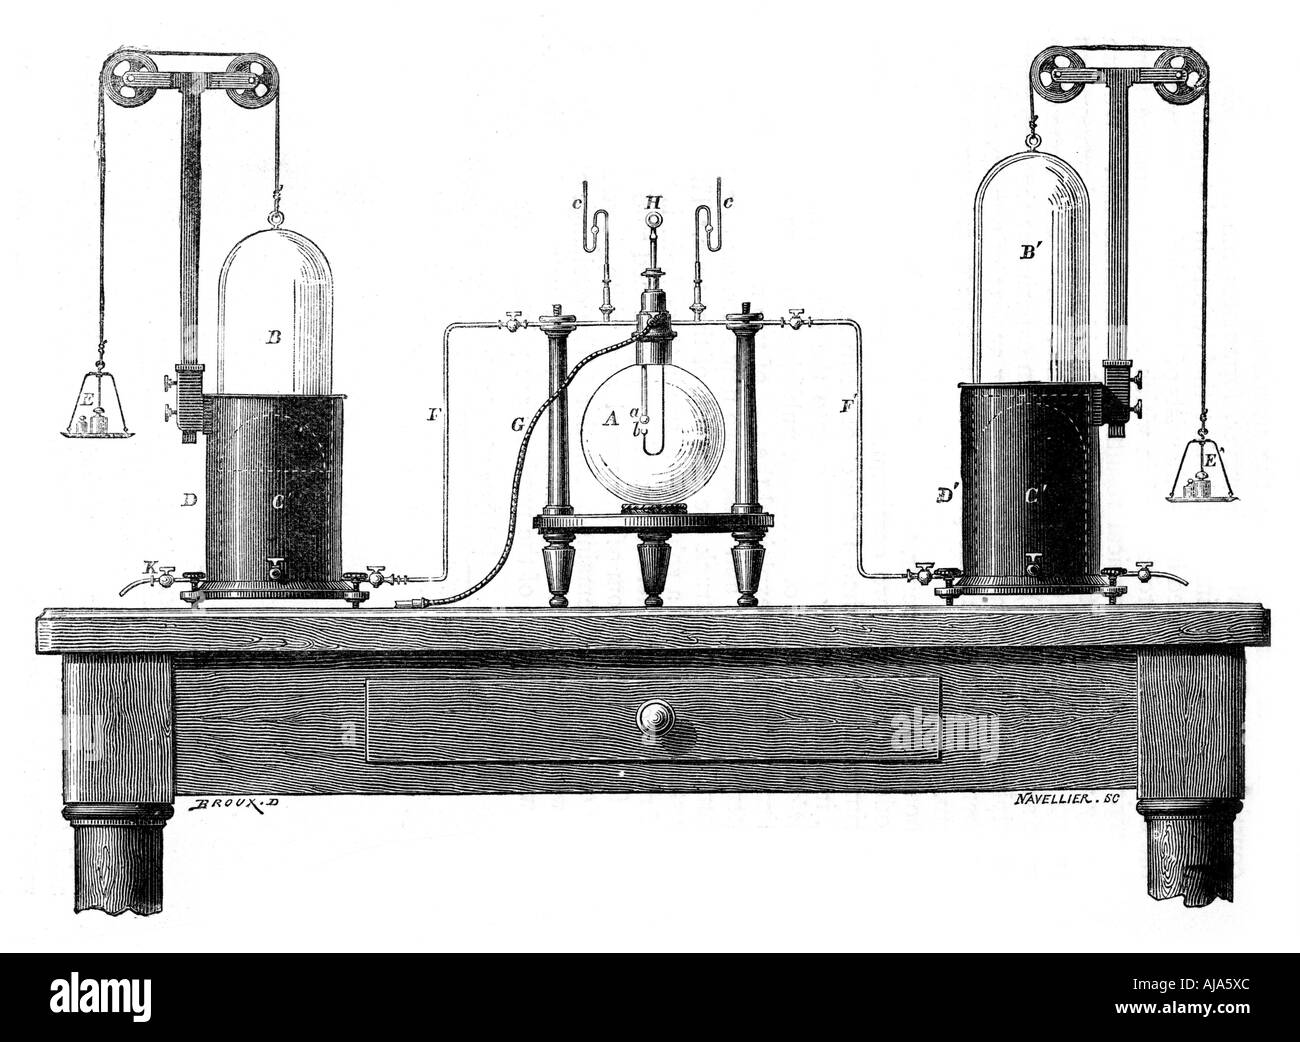 Antoine Lavoisier's apparatus for synthesizing water from hydrogen (left) and oxygen (right), 1881. Artist: Unknown Stock Photo